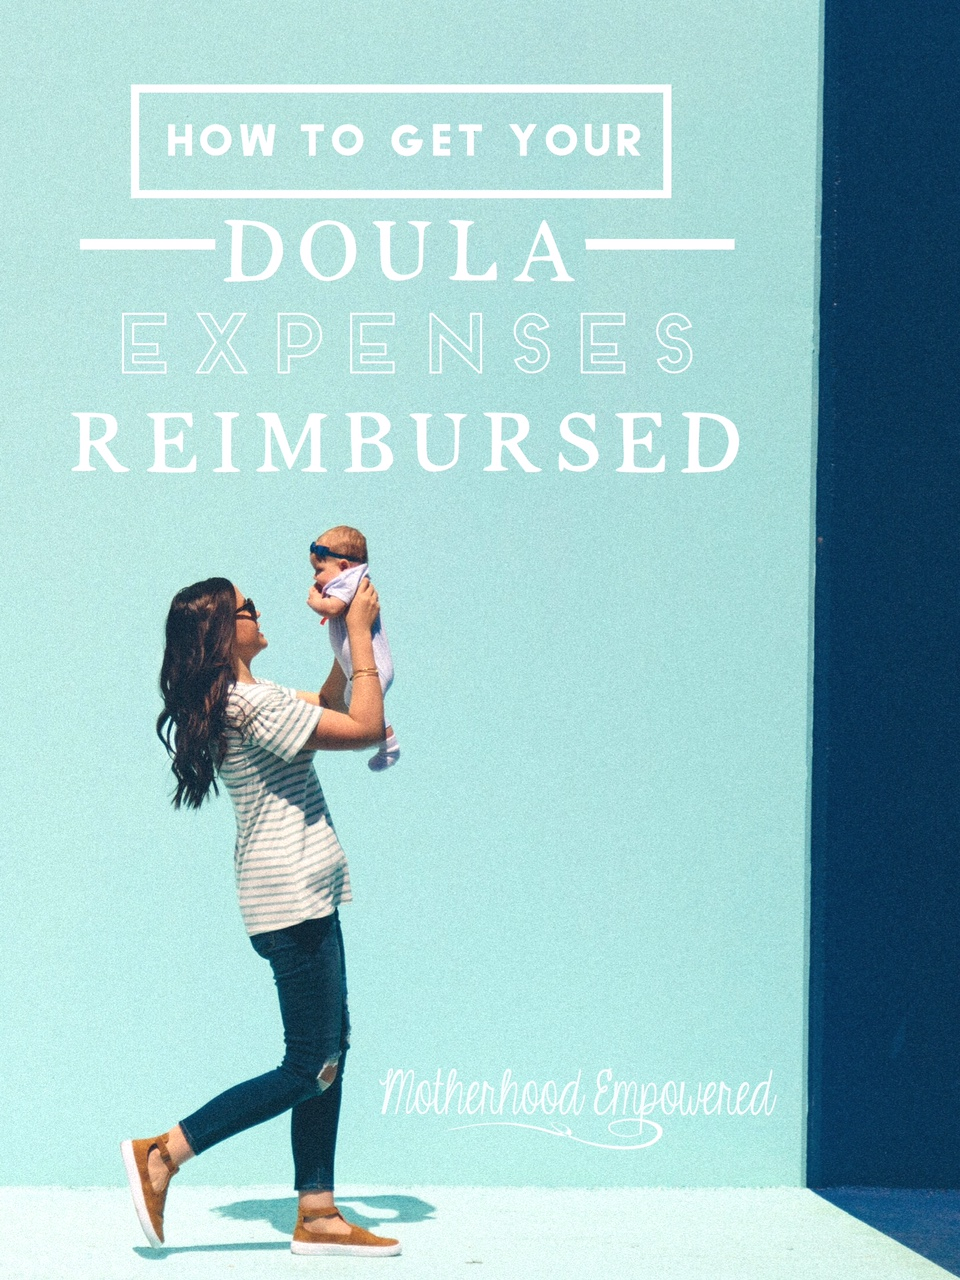 Doula Childbirth Pregnancy Education Houston The Woodlands